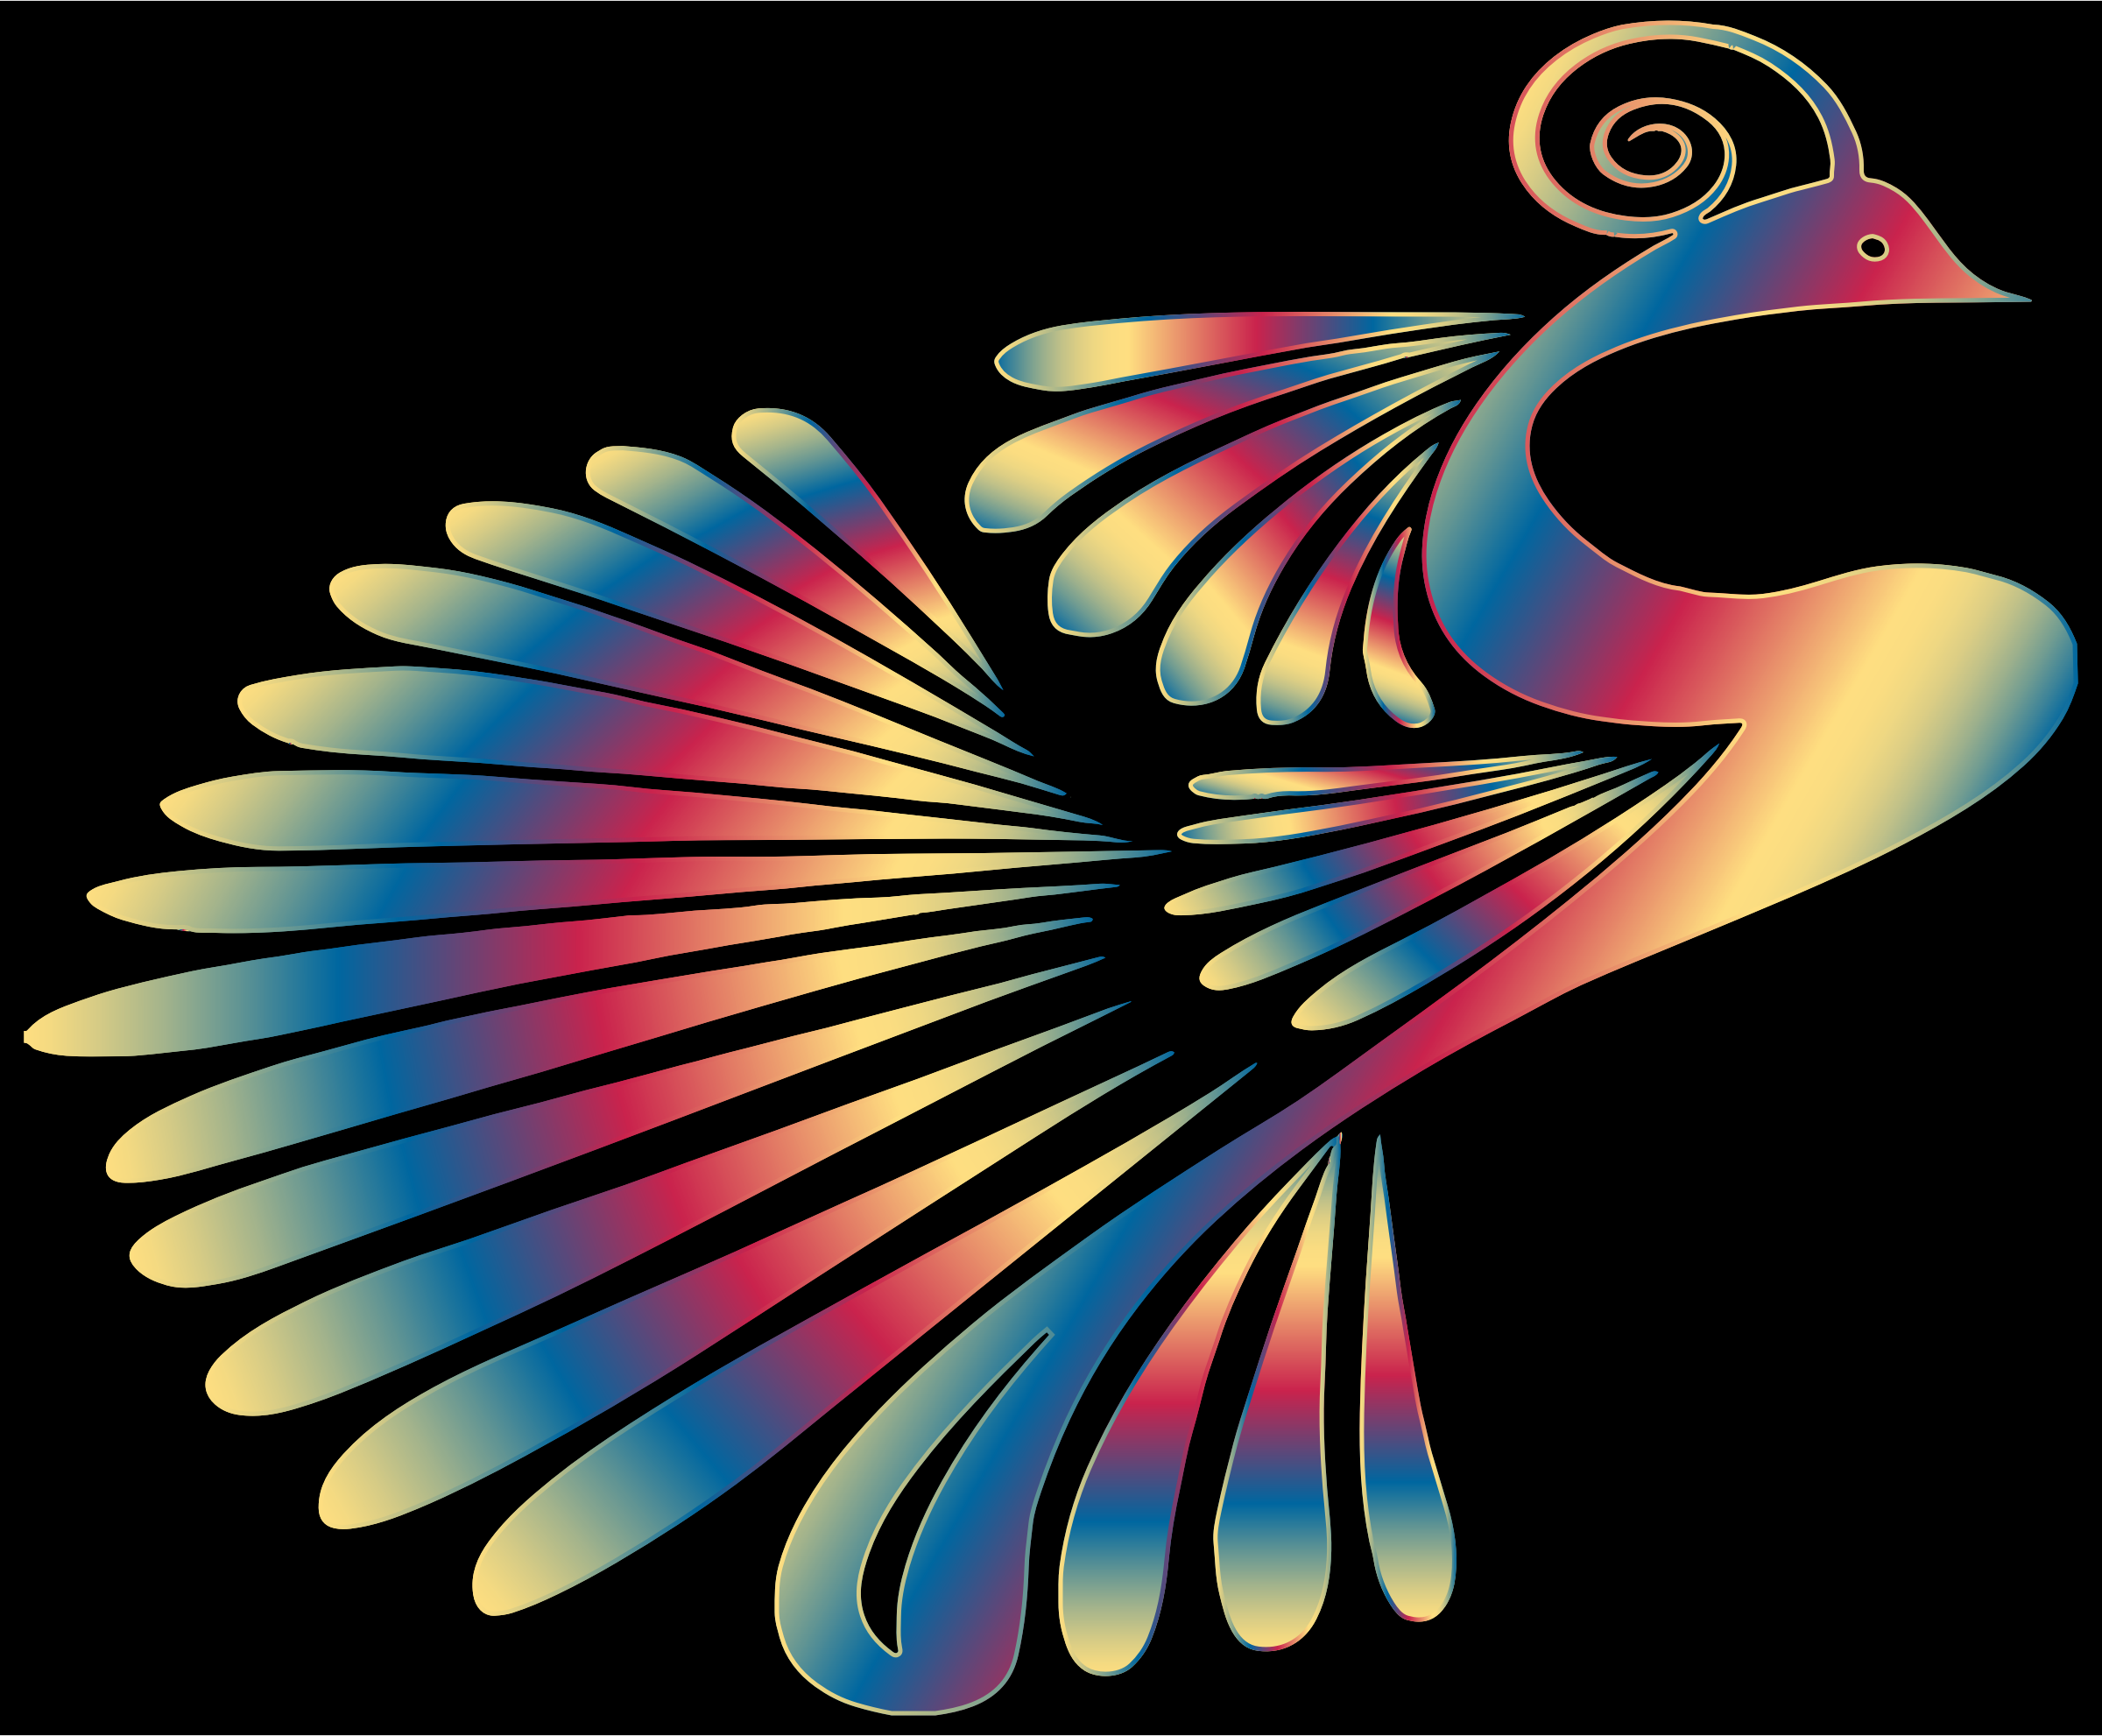 Colorful Stylized Peacock 13 by GDJ